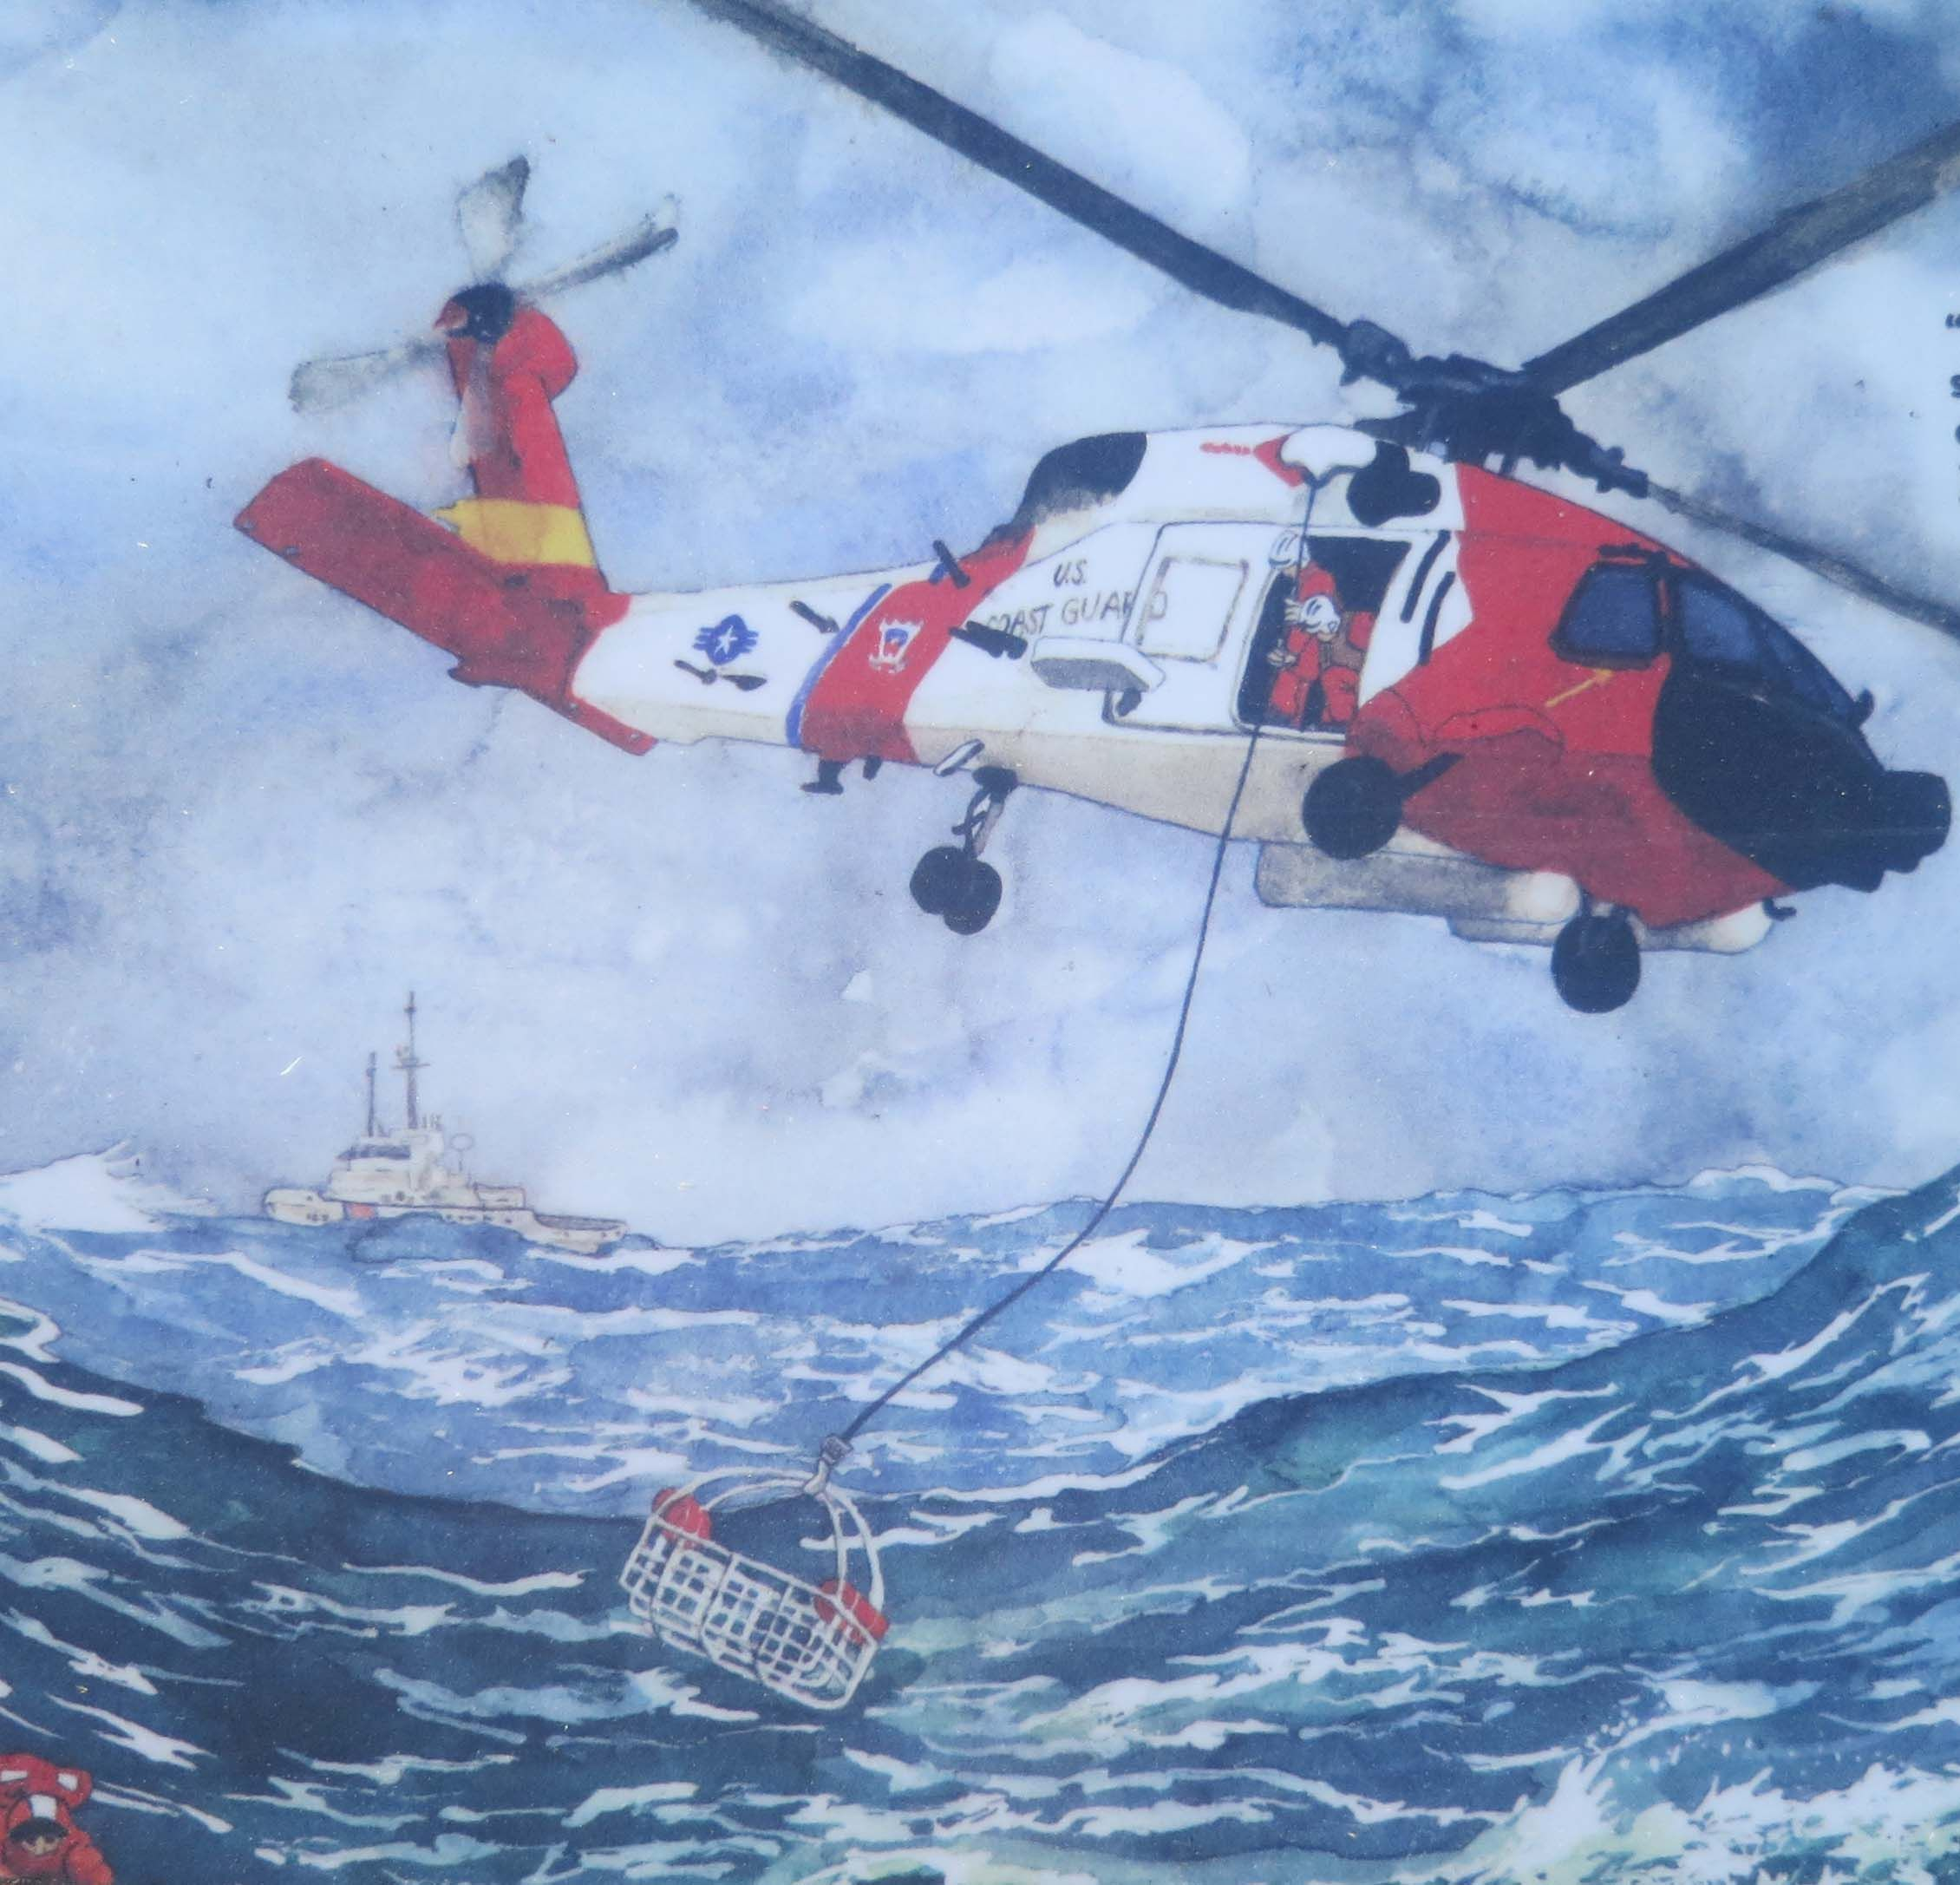 Artistic rendition of an h60 rescue effort on an